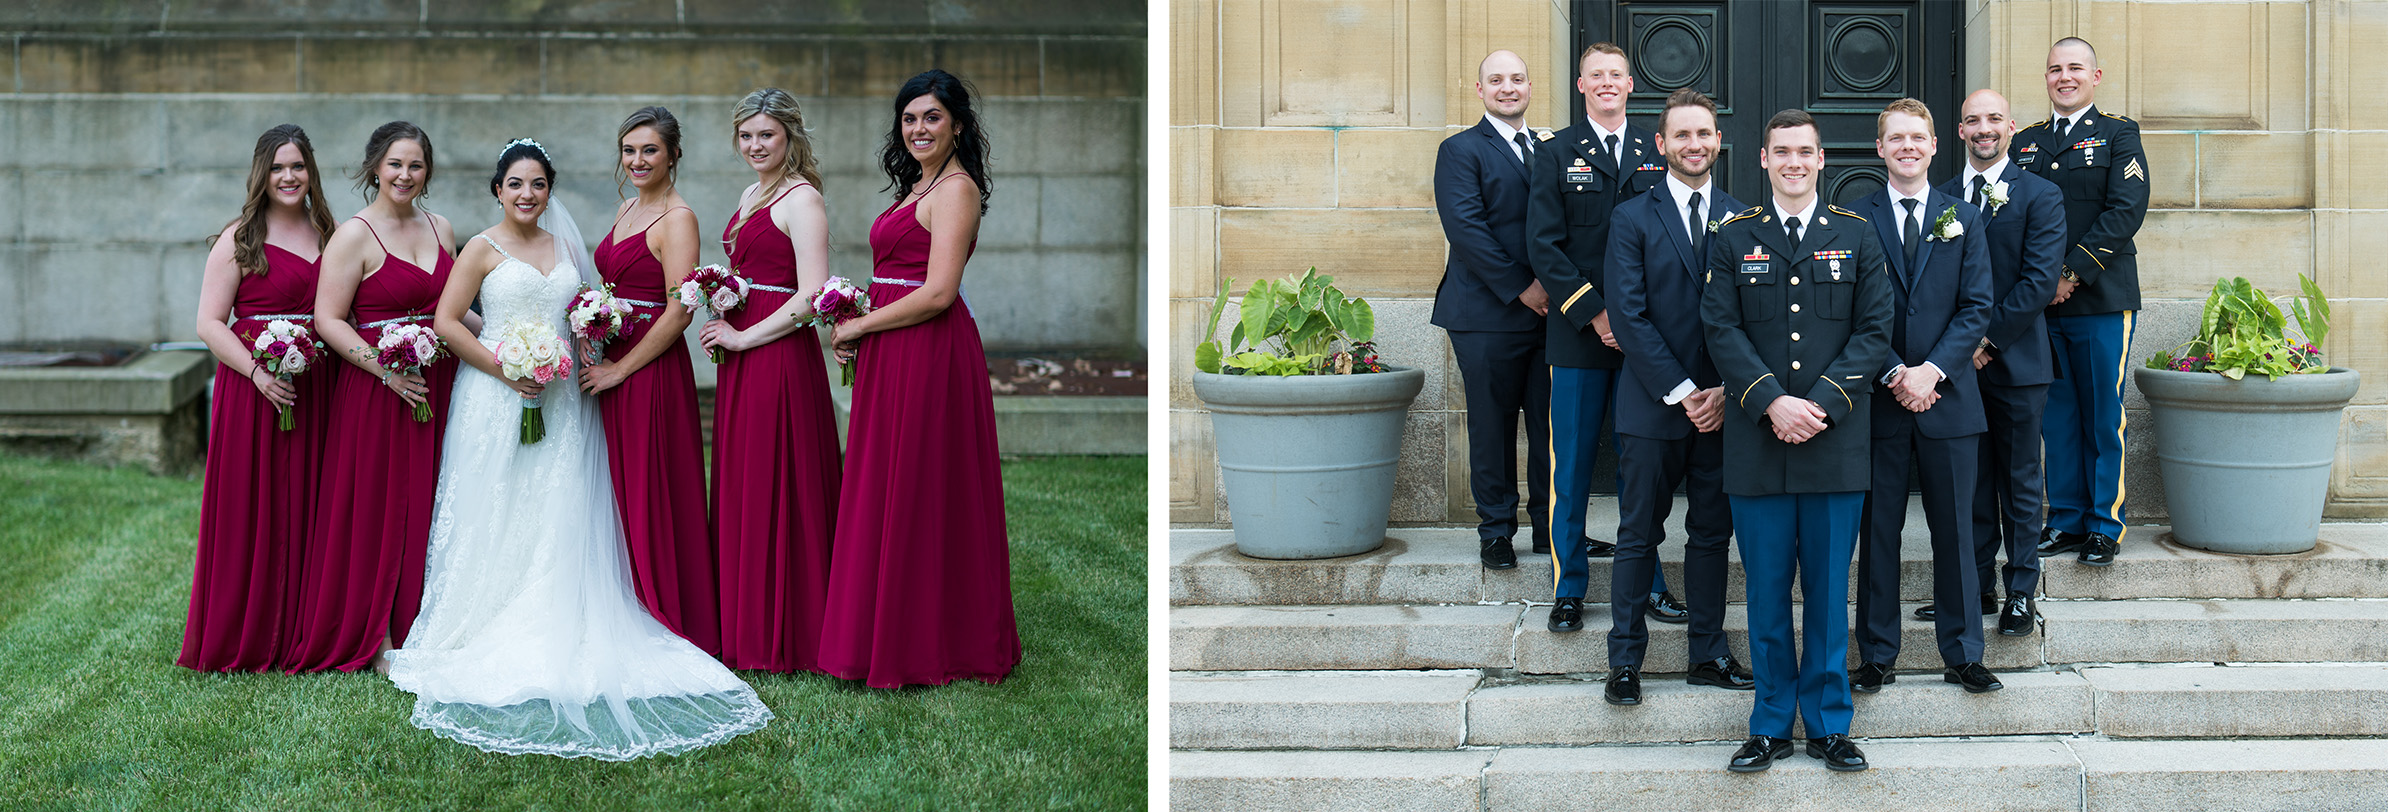 Pittsburgh Wedding Photographer Soldiers & Sailors Groomsman Bridesmaids